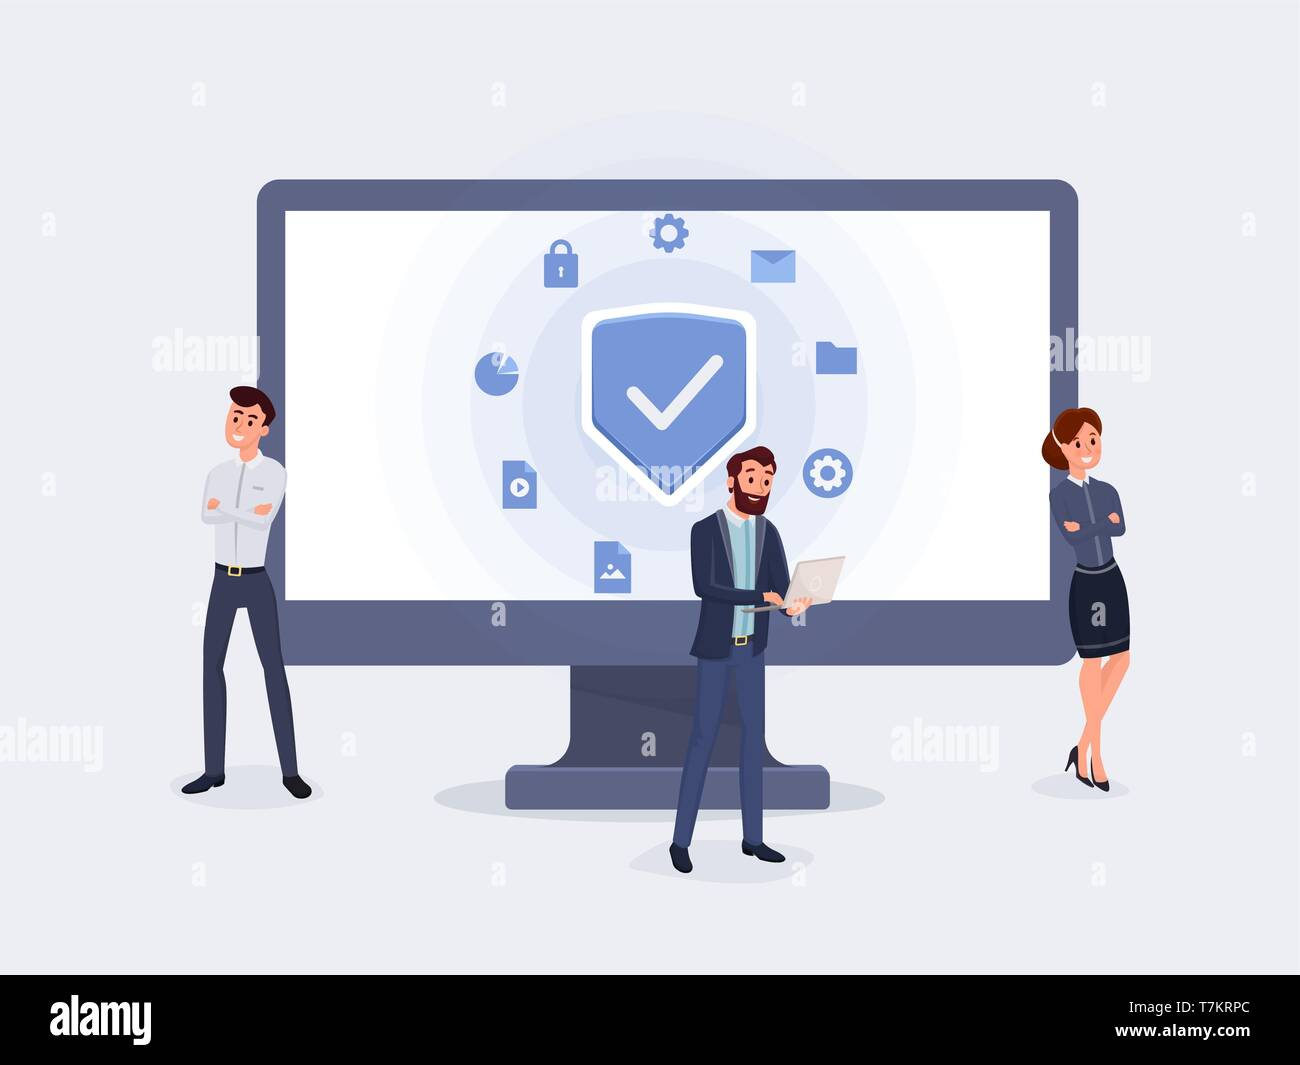 Business people with protection screen. People protect their data on device flat design vector illustration. Use for landing page, web or mobile app, banner. Secure data concept - Stock Vector